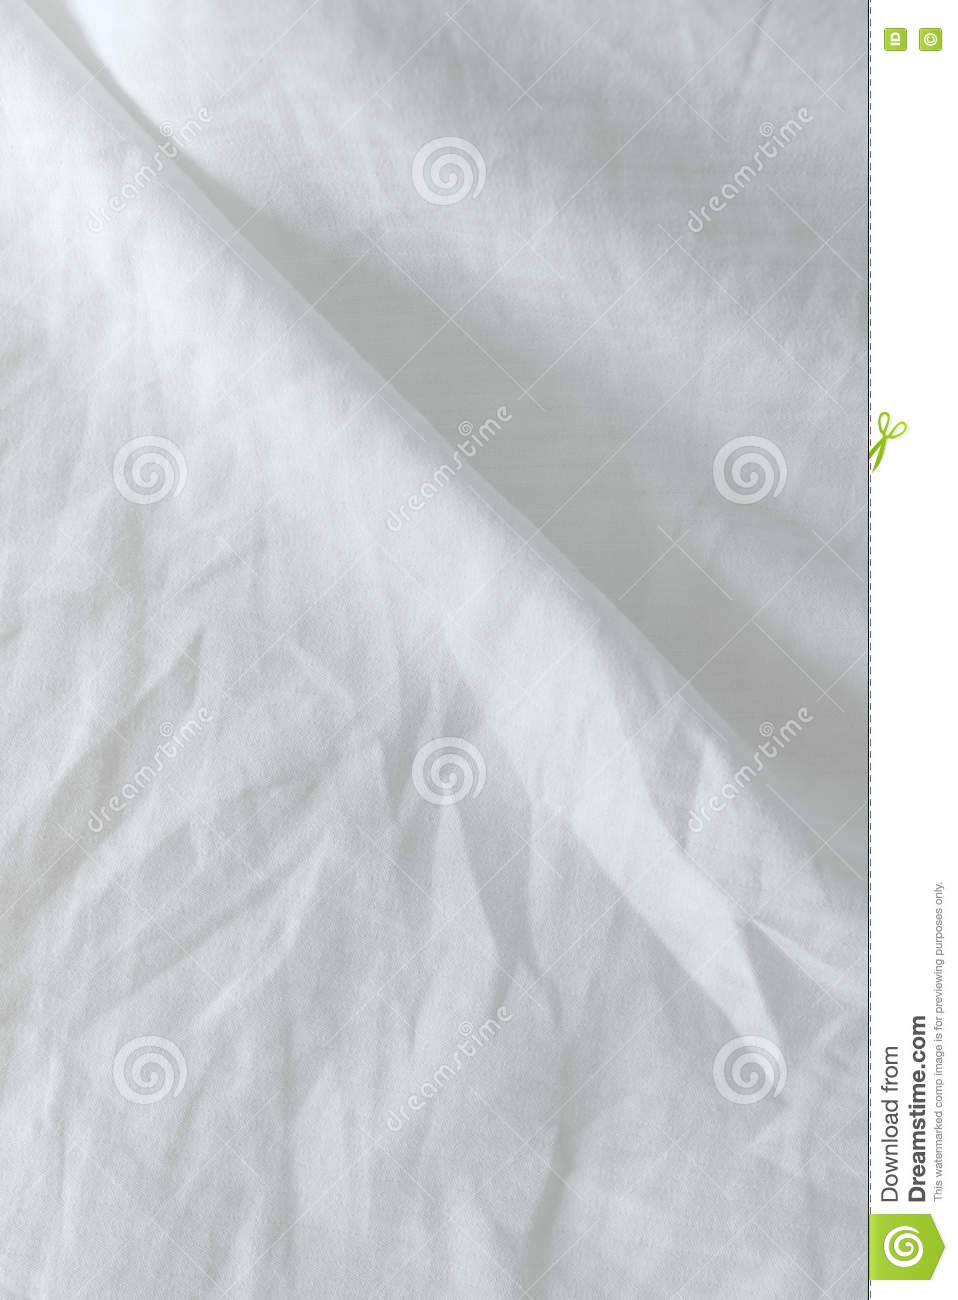 Rumpled bed sheet - Crumpled Bedding Texture Top View